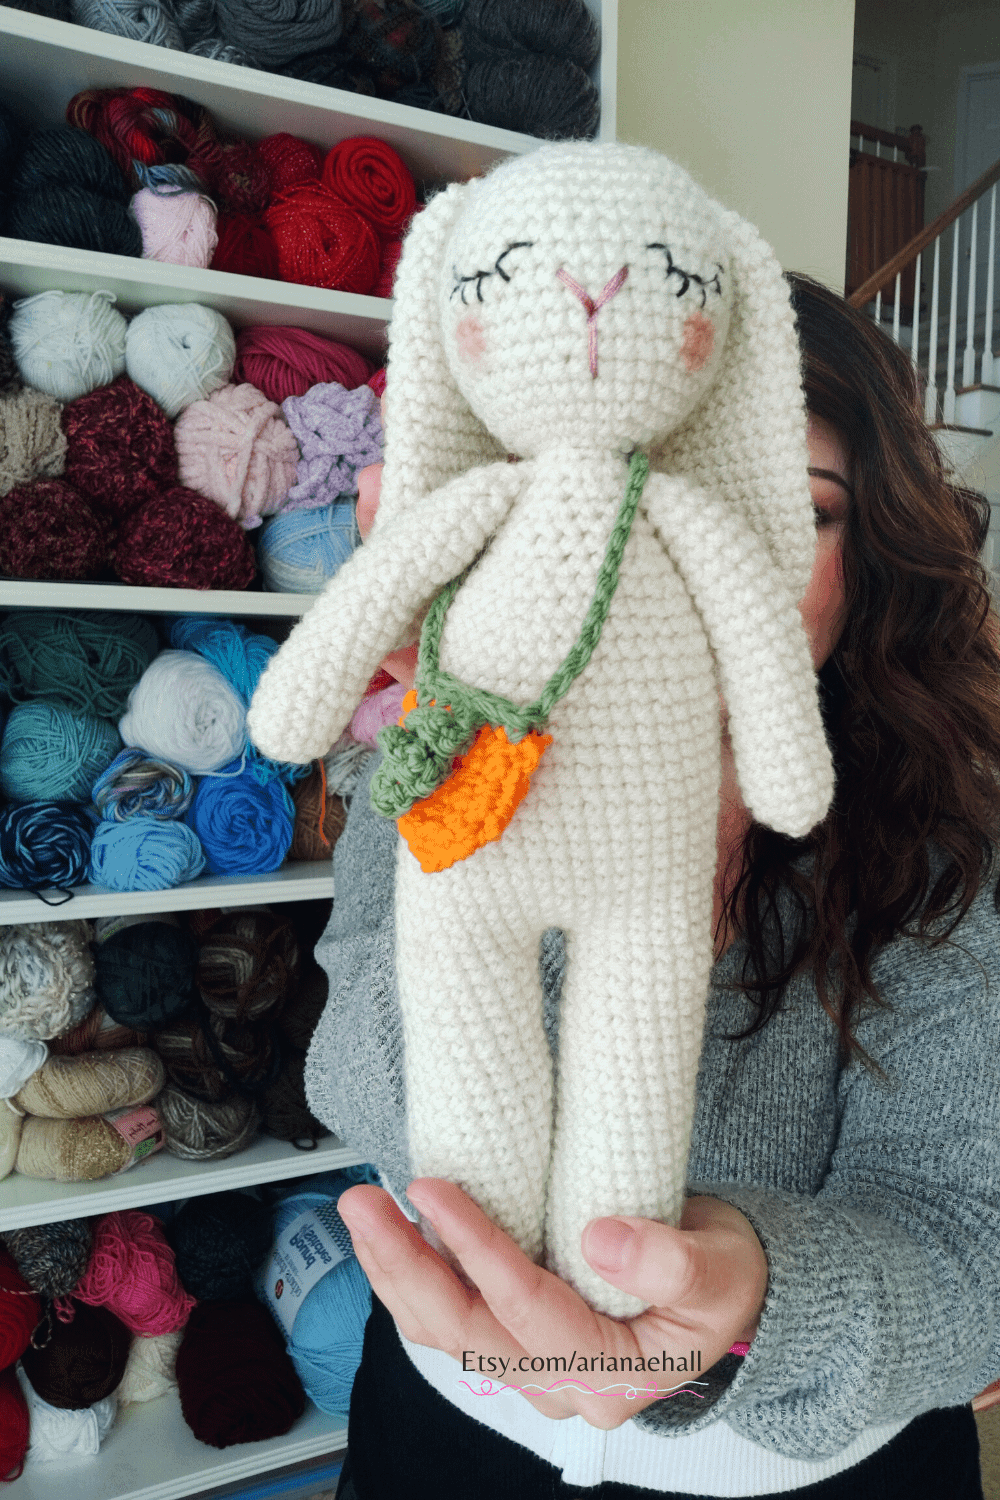 Woman holding white crochet bunny with sleeping eyes to center of camera.